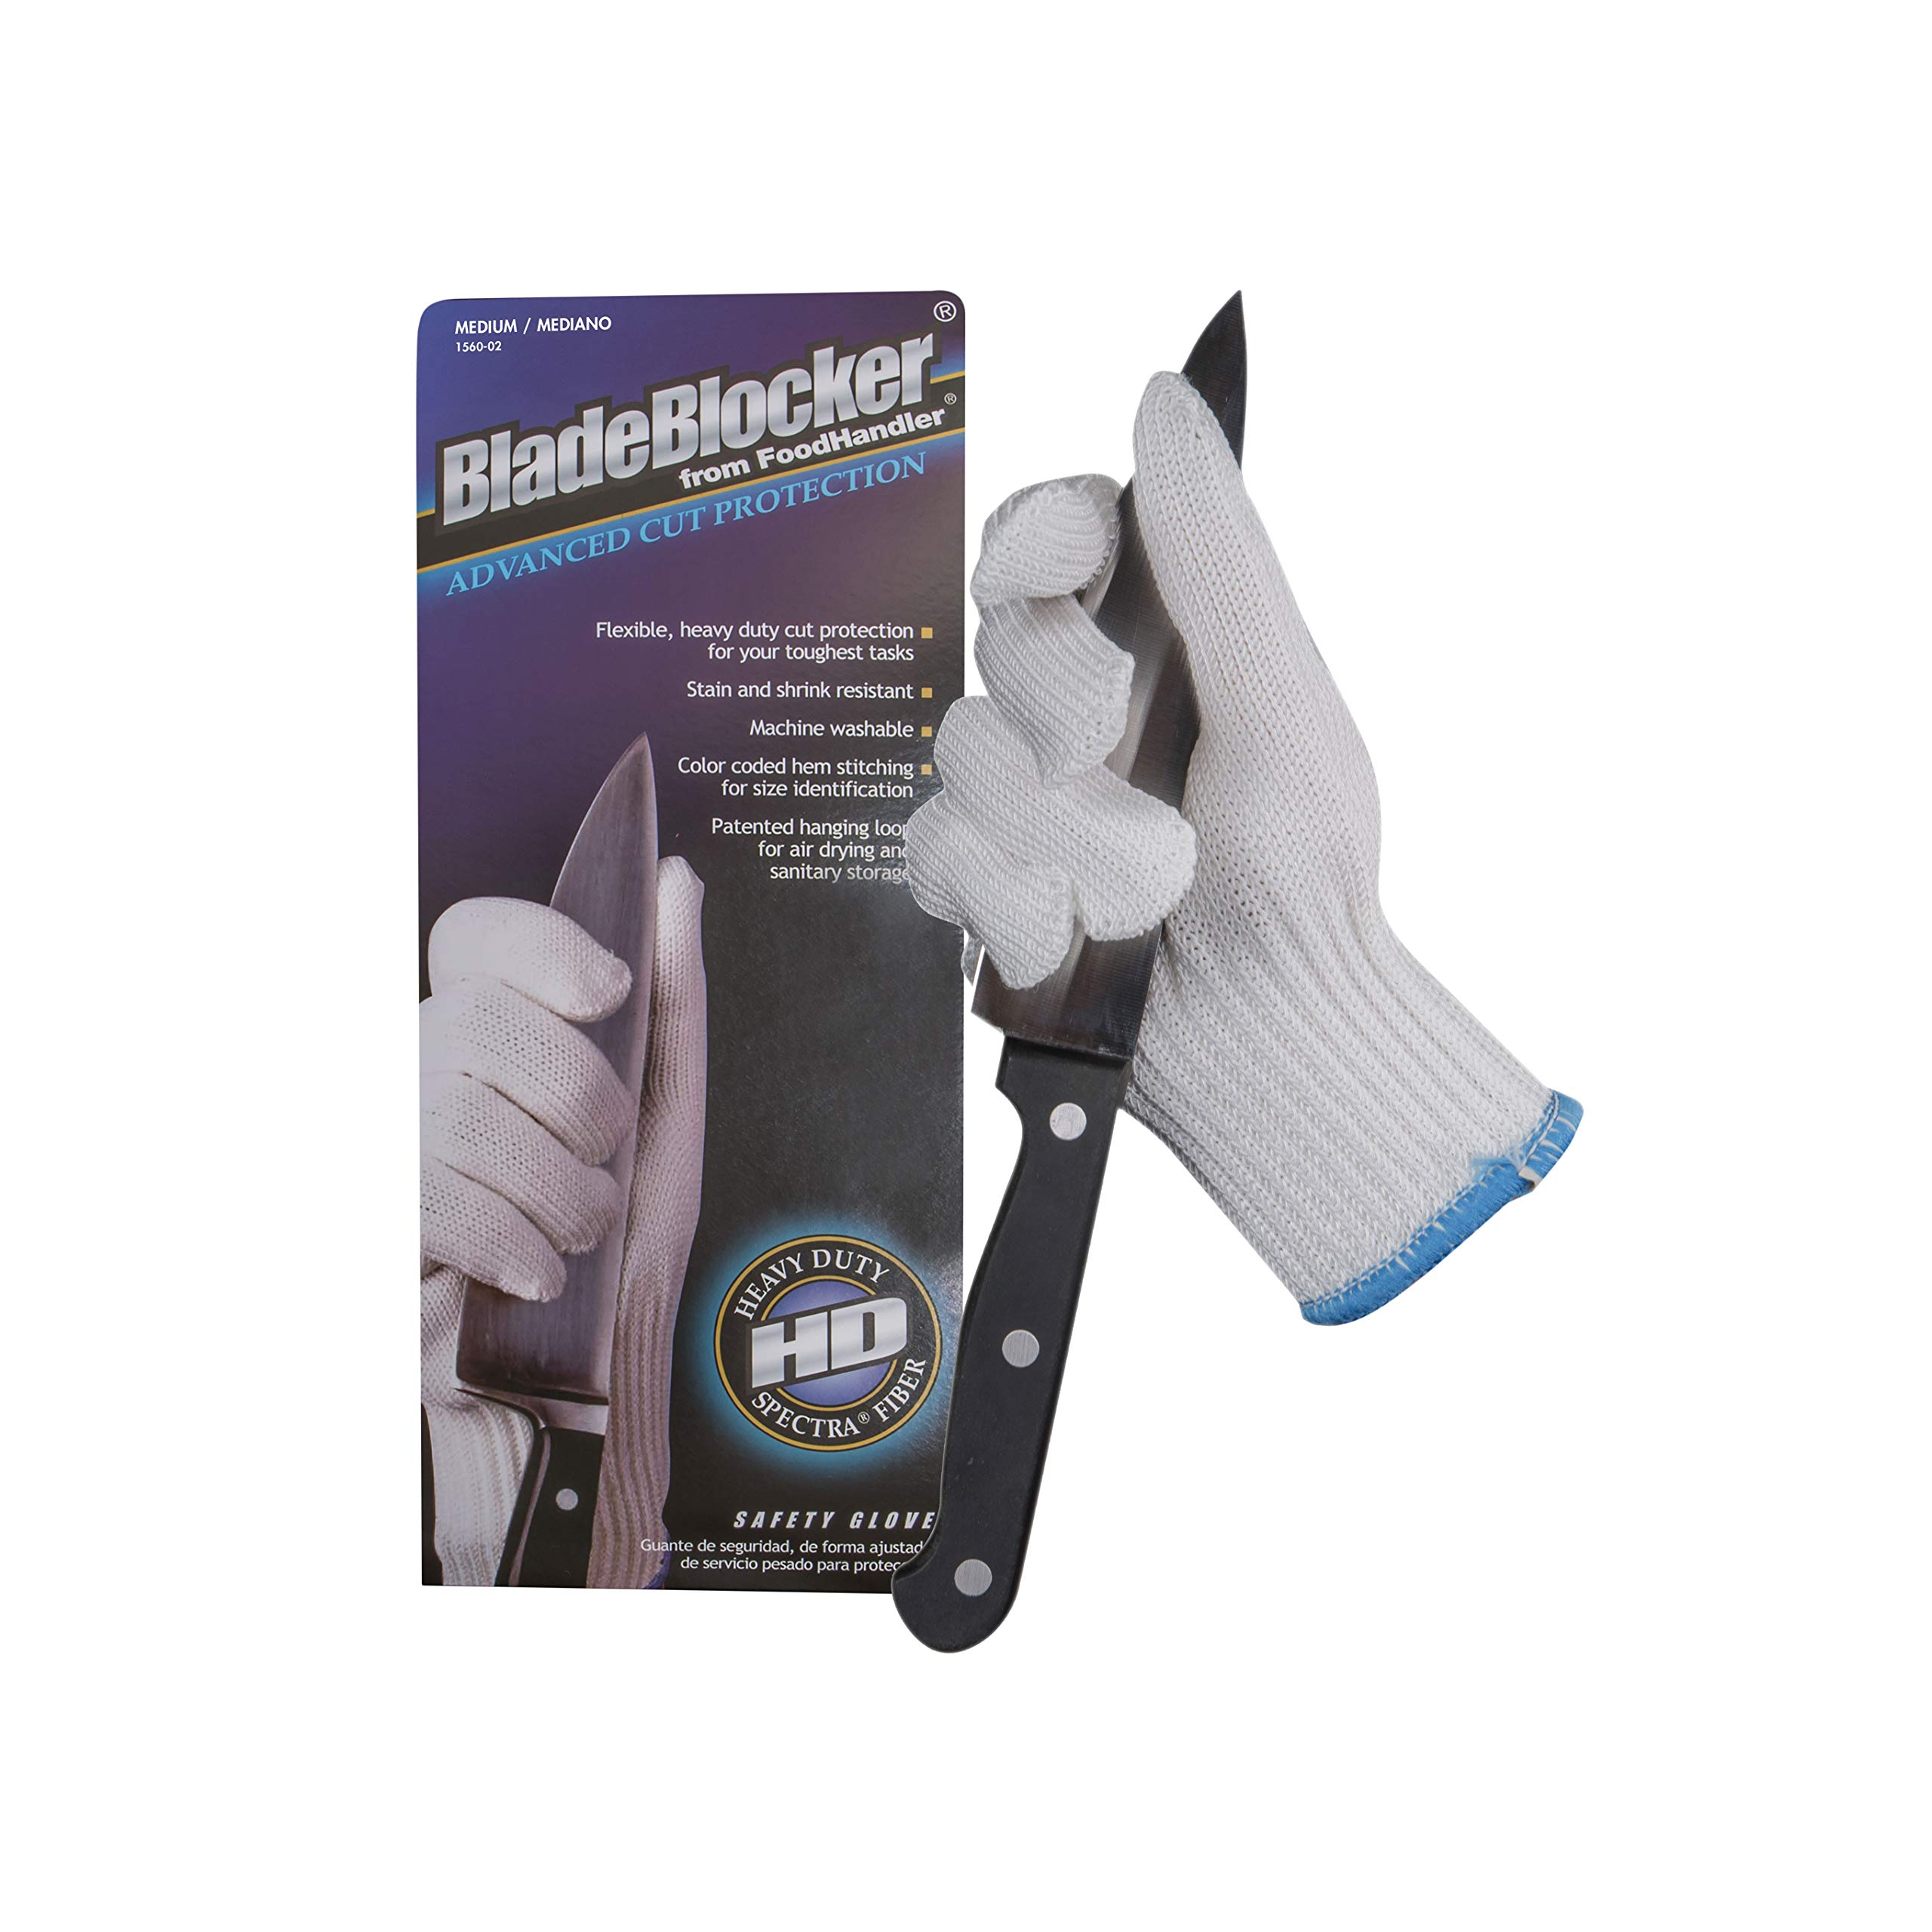 FoodHandler 1560-02 FoodHandler BladeBlocker Cut Protection, Spectra Fiber, MD, White (Pack of 12)